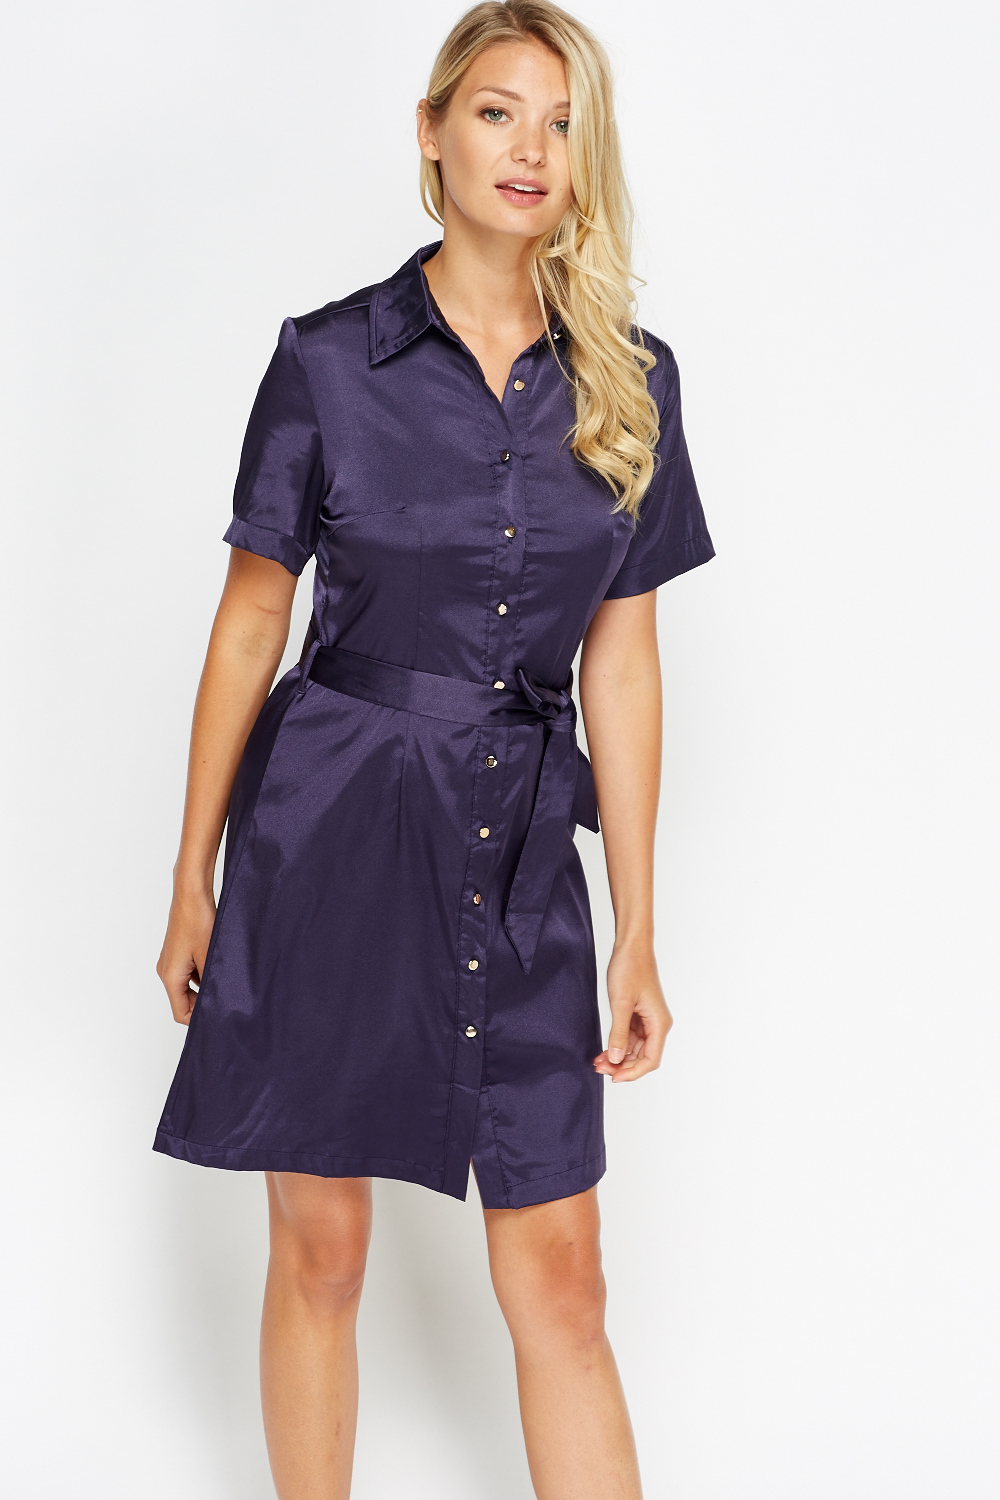 Satin Shirt Belted Dress Just 163 5